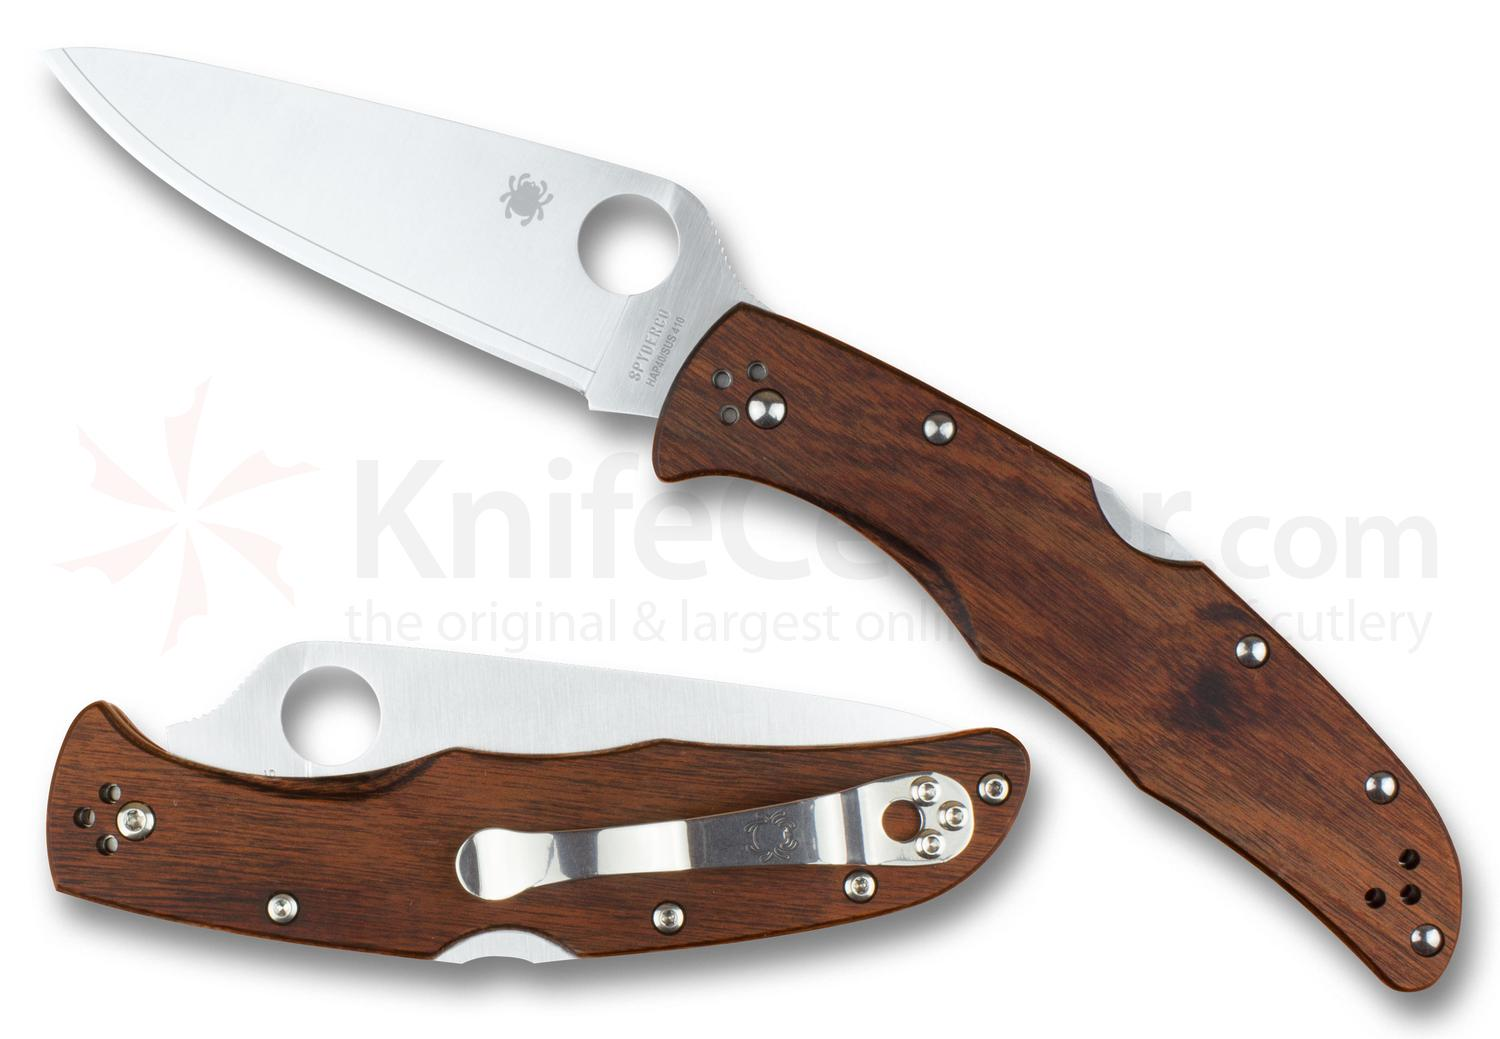 Spyderco Endura 4 Folding Knife 3.8 inch HAP40/SUS410 Satin Plain Blade, Mahogany Pakkawood Handles, KnifeCenter Exclusive